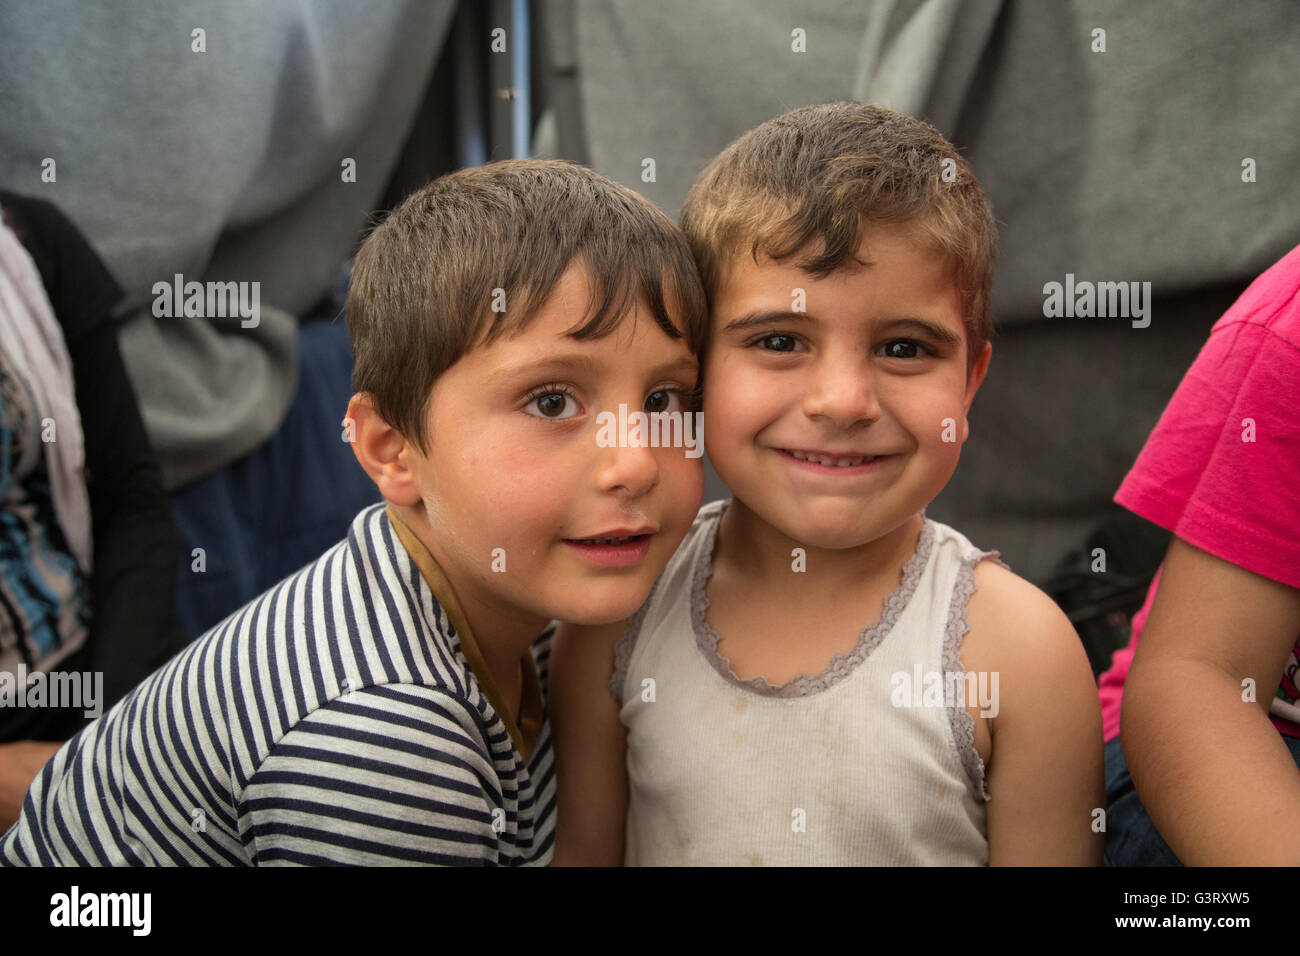 Syrian refugee children smile for the camera in the Idomeni camp at the border of Greece and Macedonia. - Stock Image